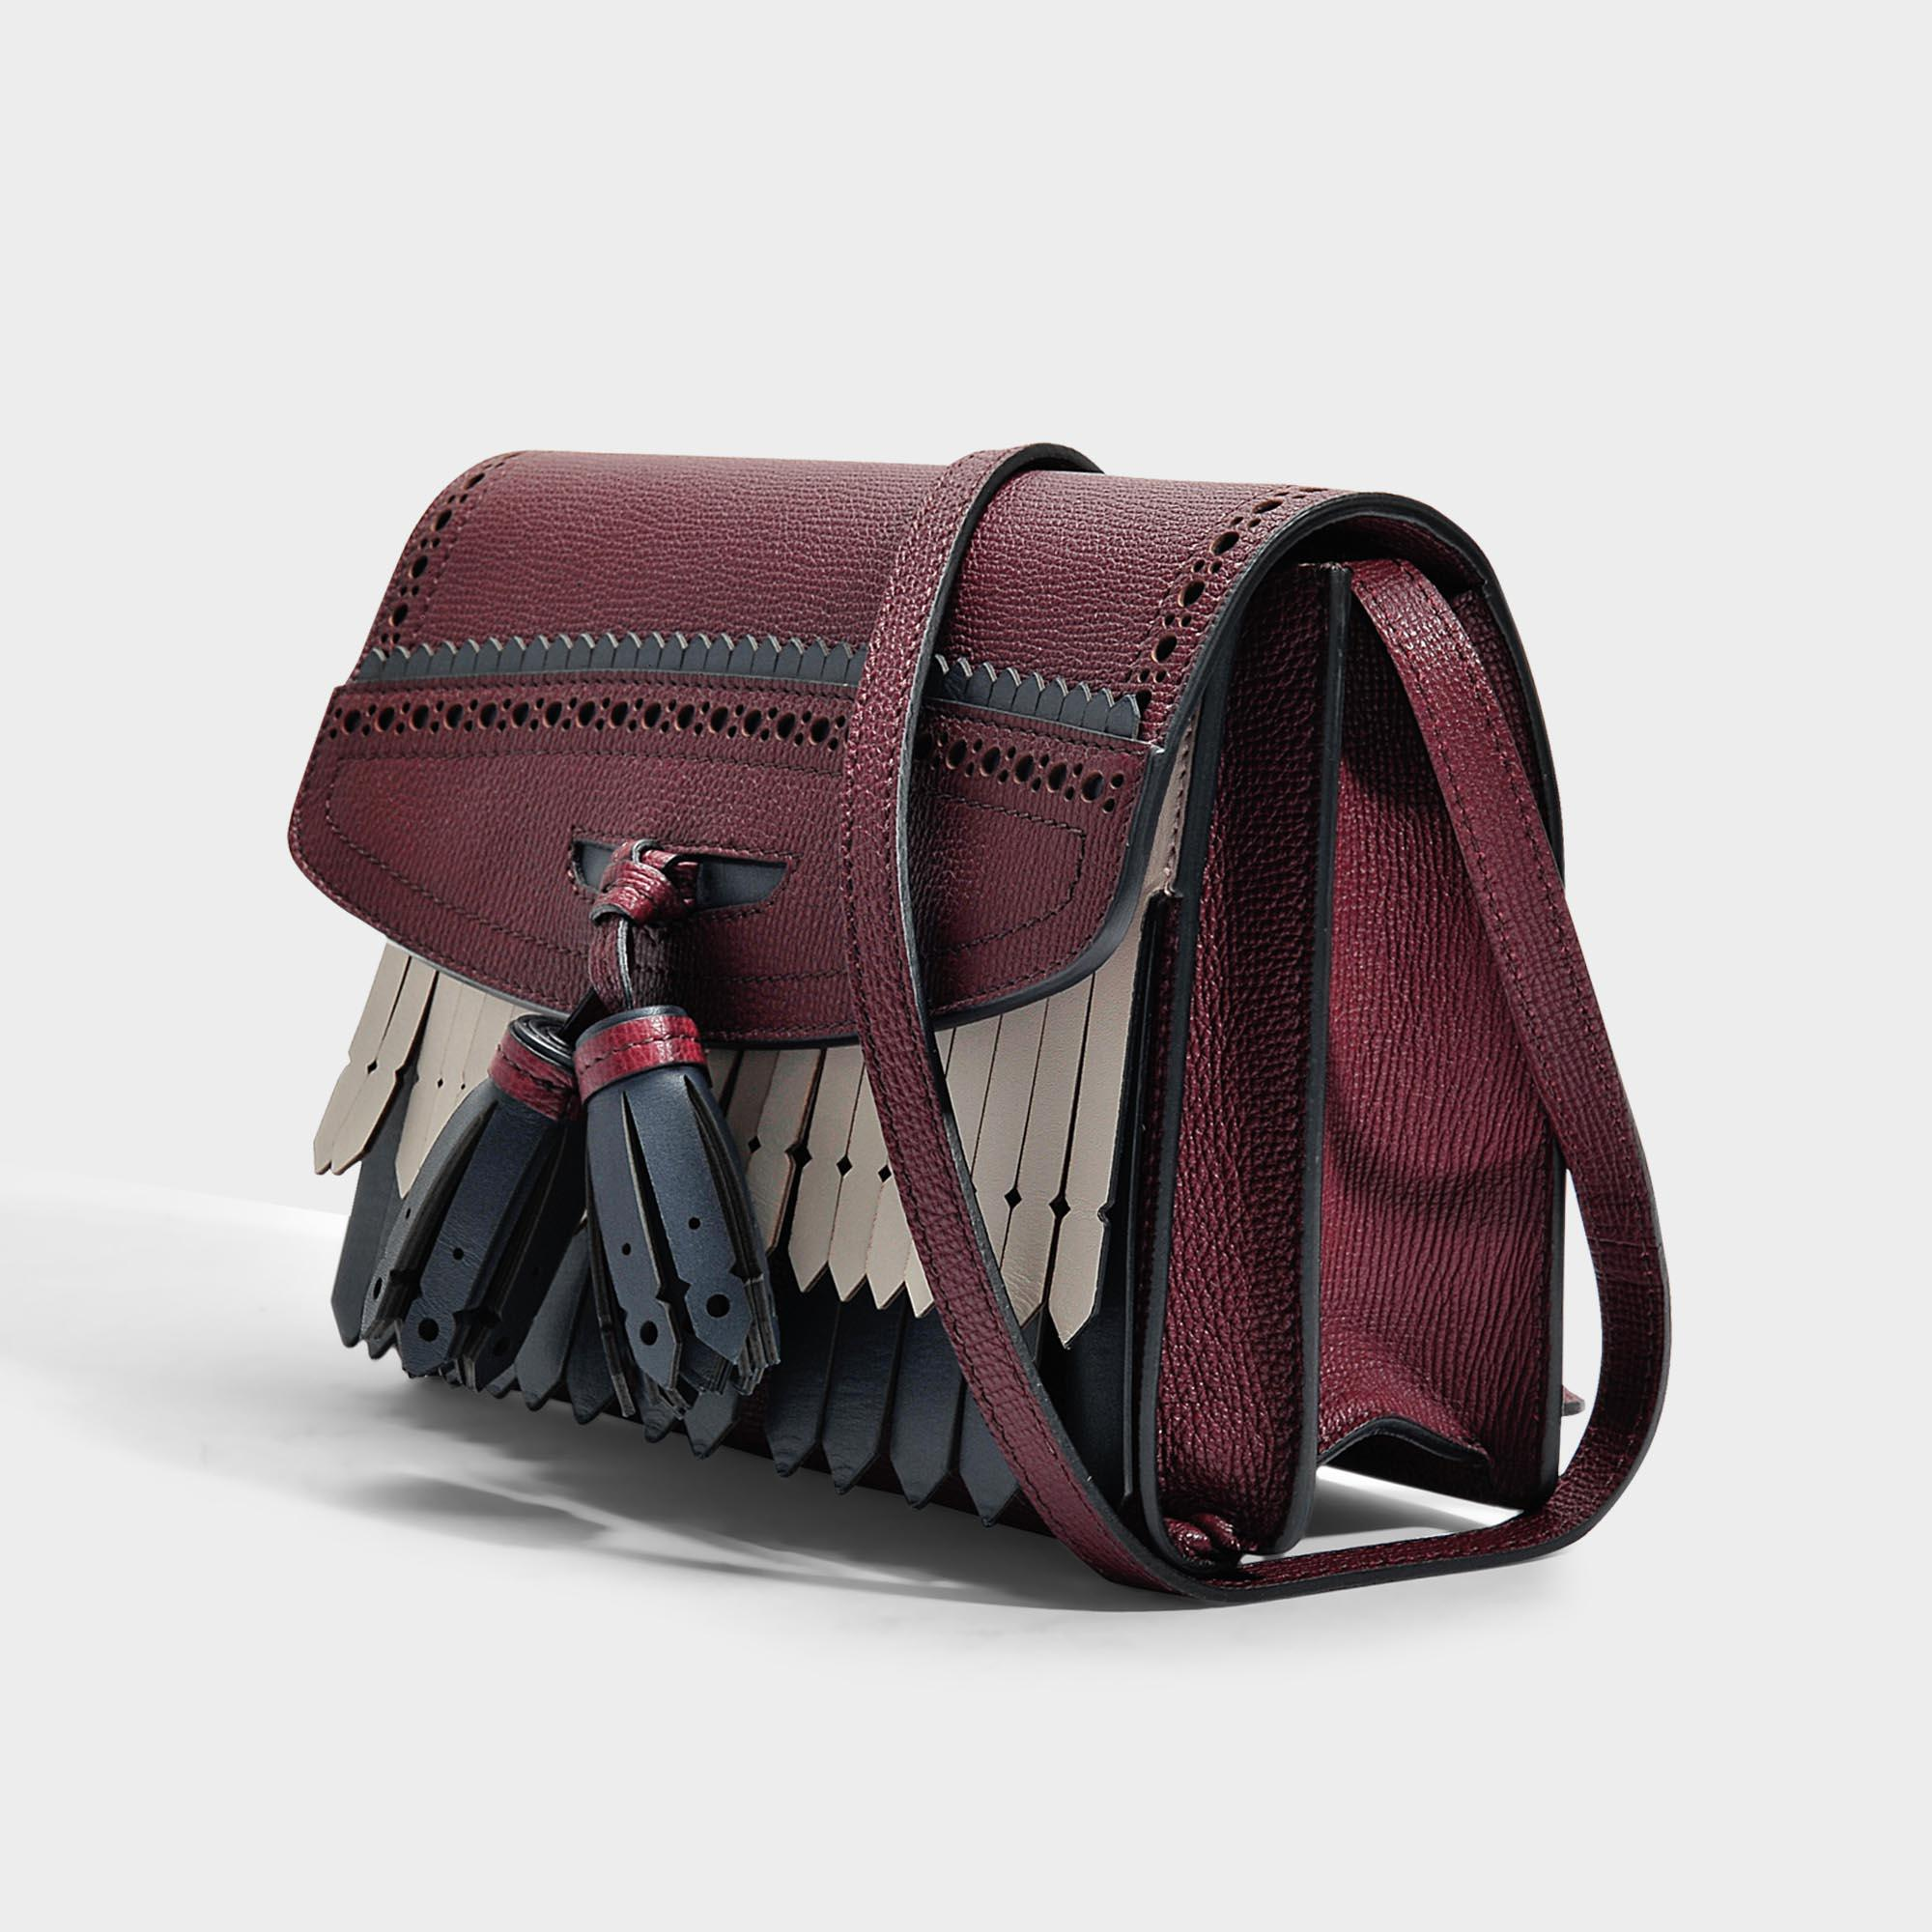 Lyst - Burberry Small Macken Crossbody Bag In Mahogany Red Grained ... f02c3a1b6ce14